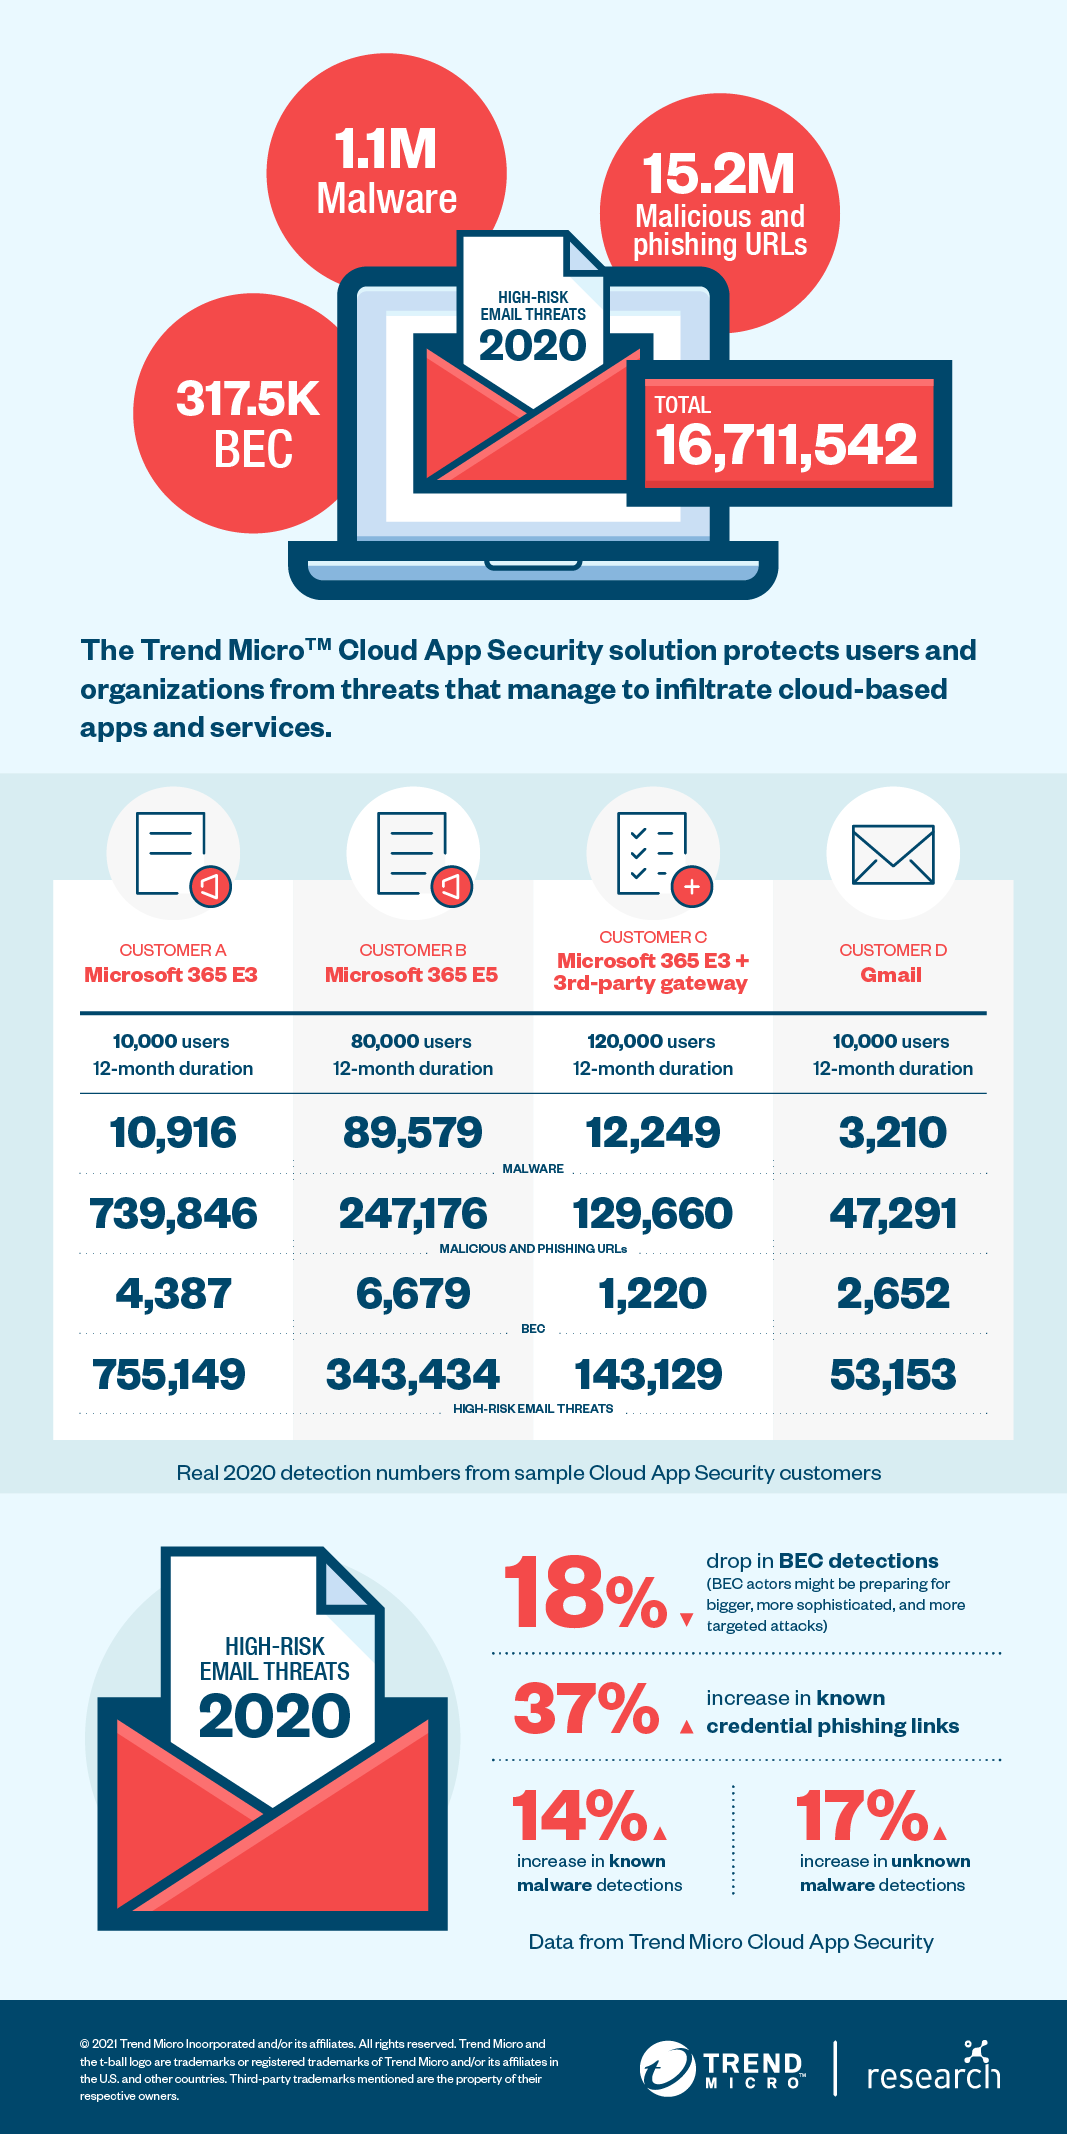 An infographic of the email threat landscape of 2020 by Trend Micro Cloud App Security